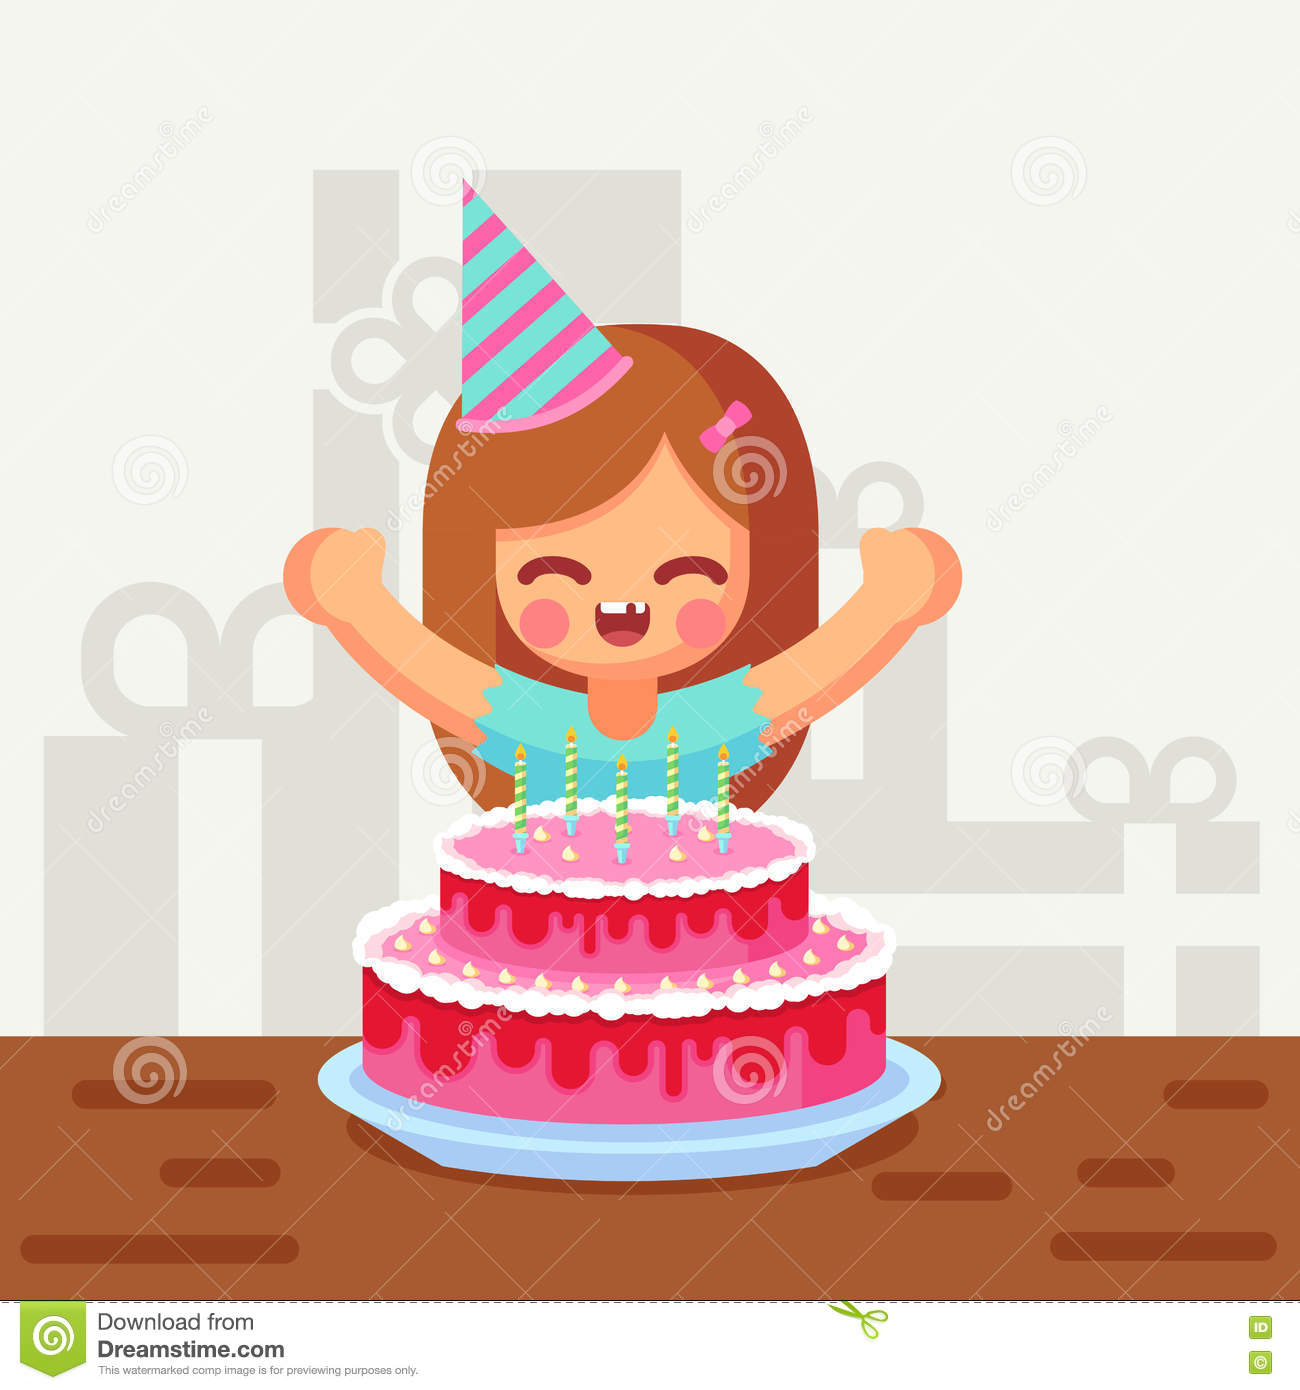 Cute Cartoon Cake Images : Cartoon Girl With Birthday Cake Pictures to Pin on ...